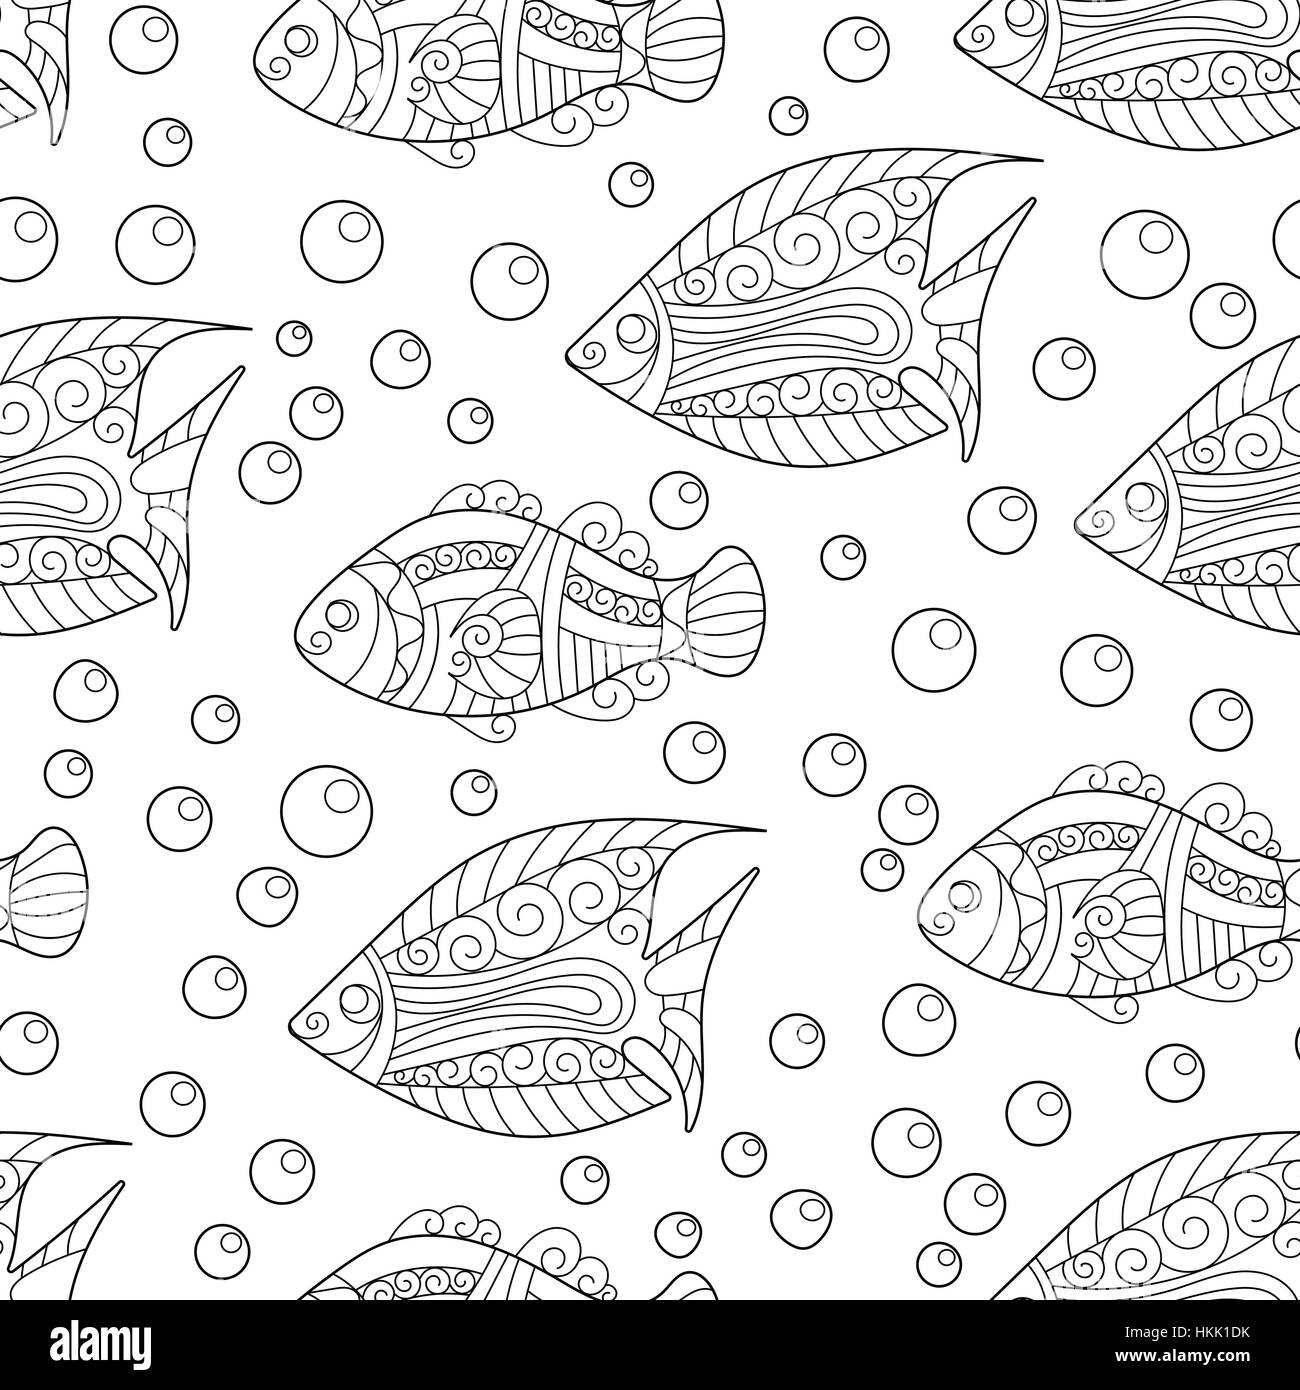 Coloring Pages For Adult Book Antistress Seamless Abstract Hand Drawn Ornamental Fish